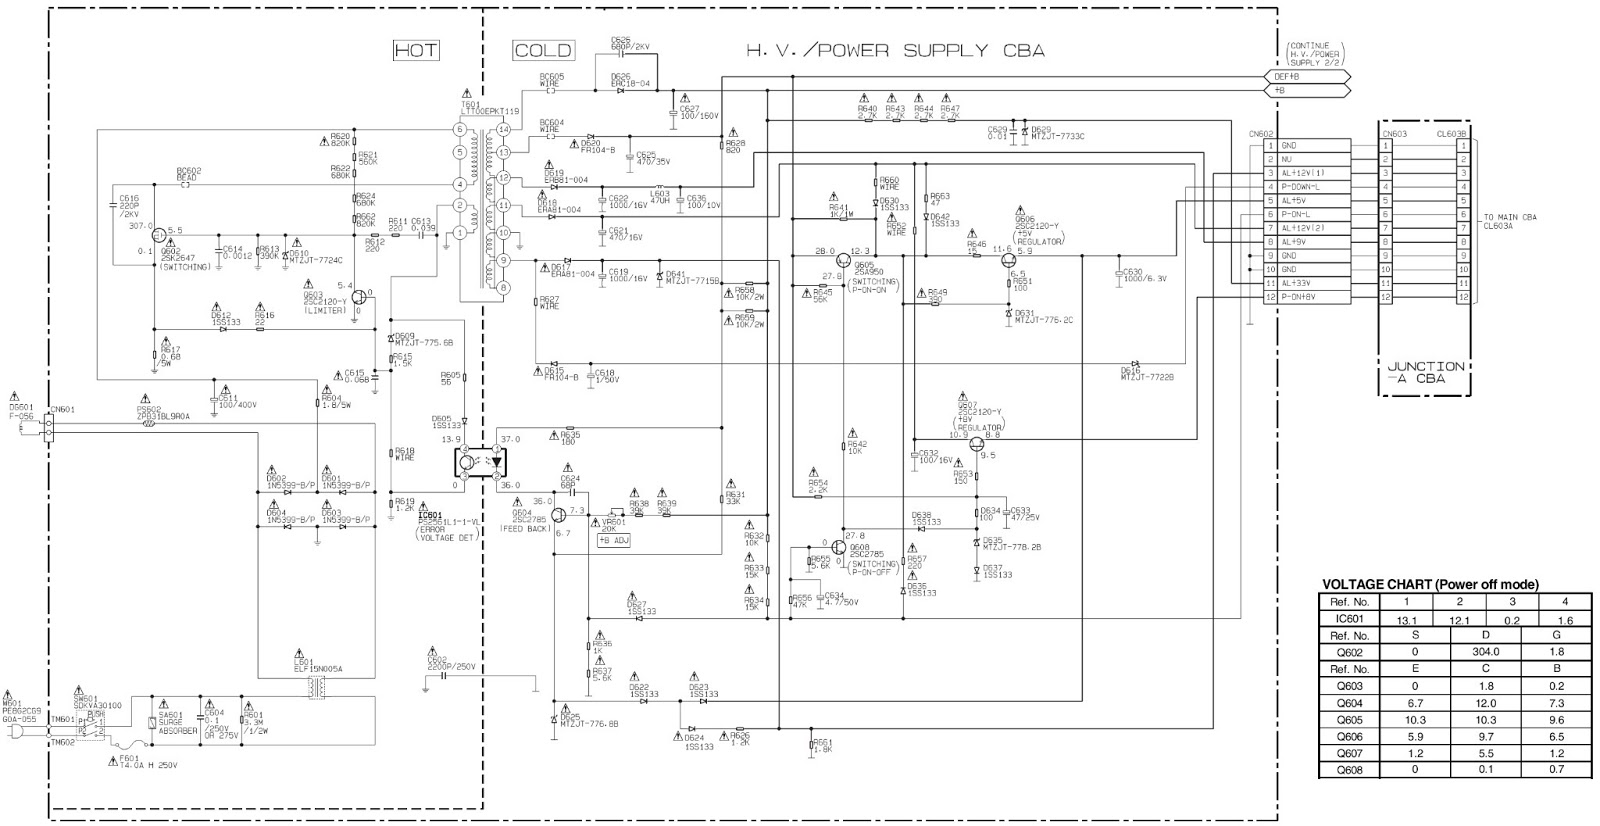 Chinese Power Supply Schematic Trusted Wiring Diagrams Electronics Repair Made Easy Chanwong Tvchina See Circuit Below Tokai Lt Vhs36 T6608fj China Smps Simple